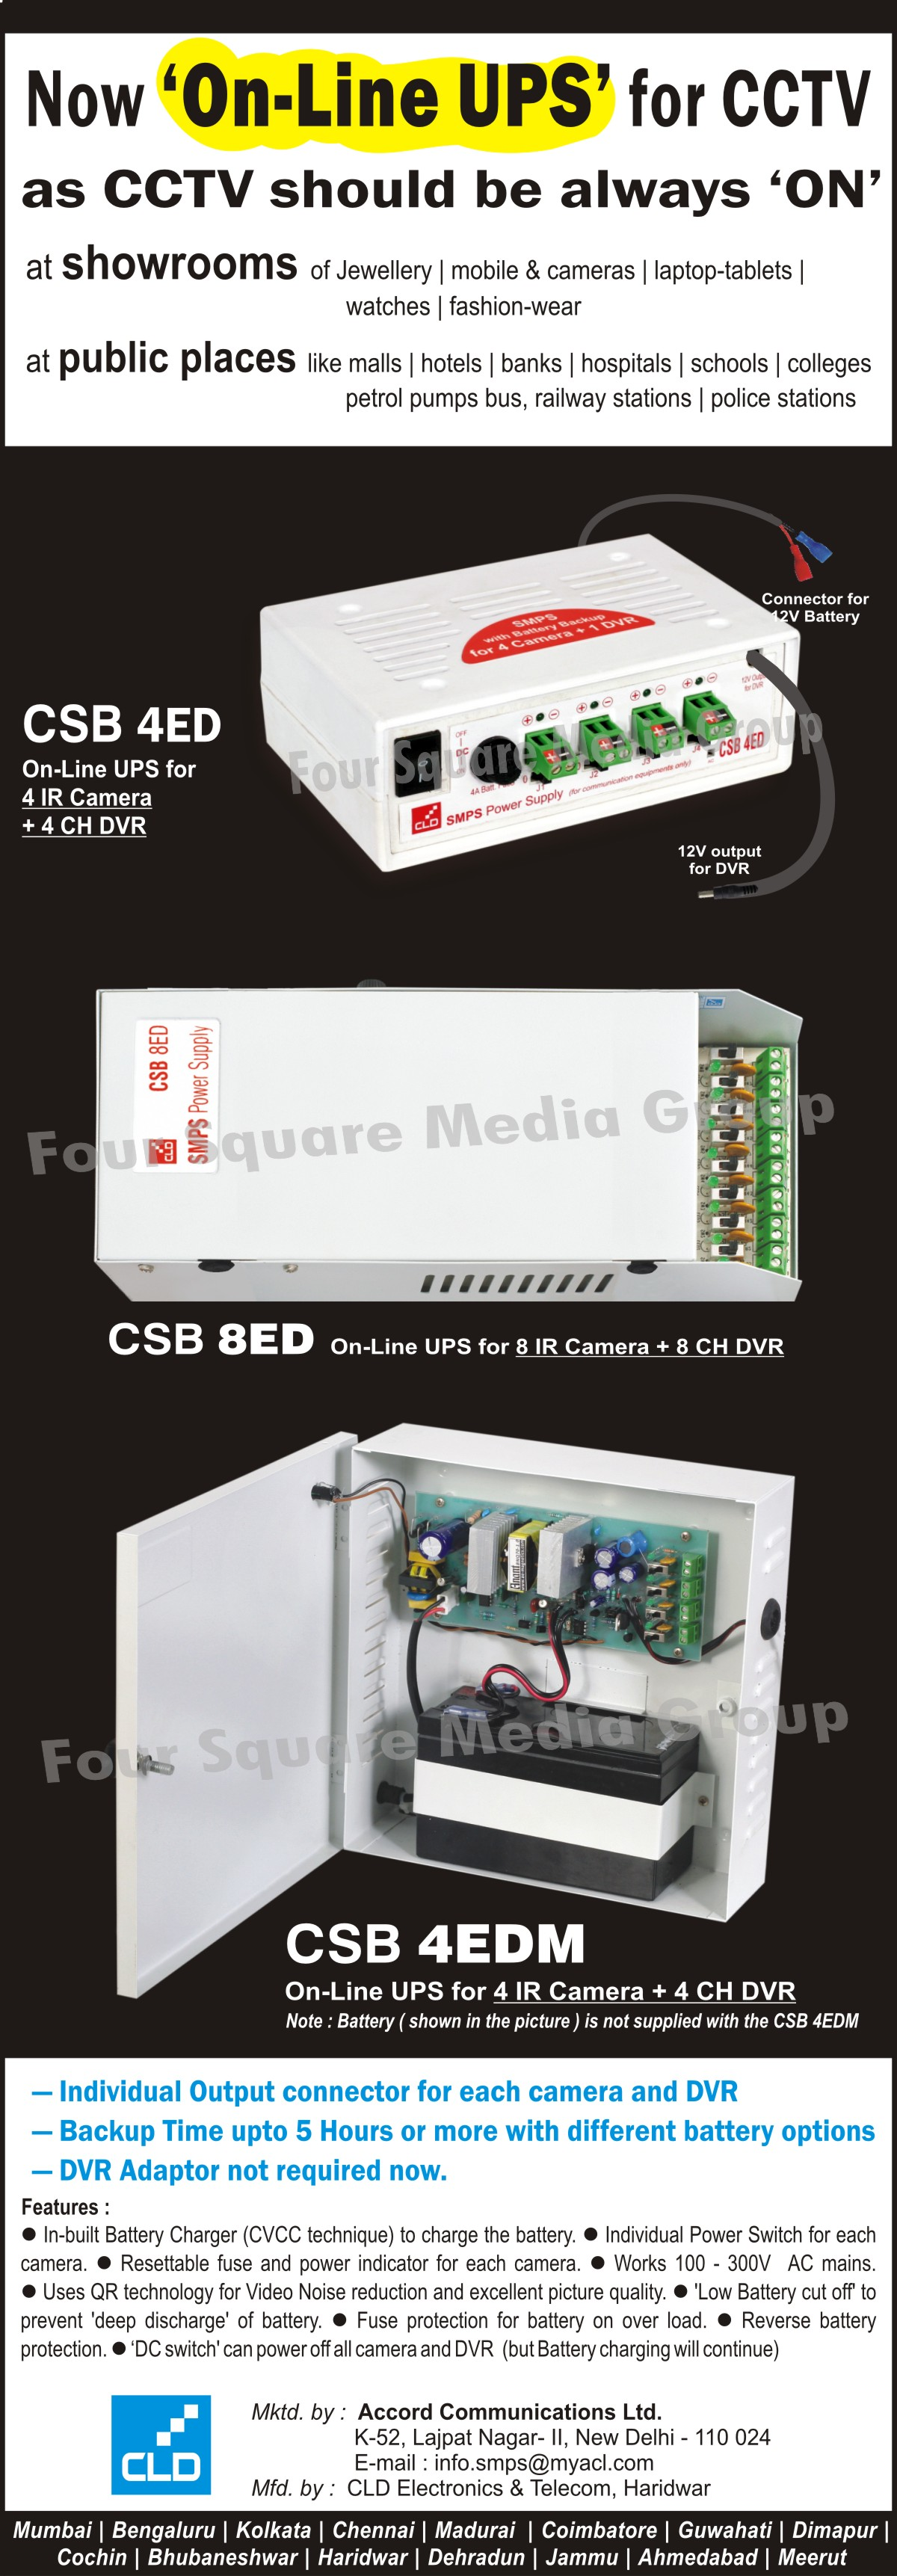 CCTV Power Supplies, SMPS,CCTV SMPS , LED Lights, CCTV Battery Backup Power Supplies, CCTV SMPS